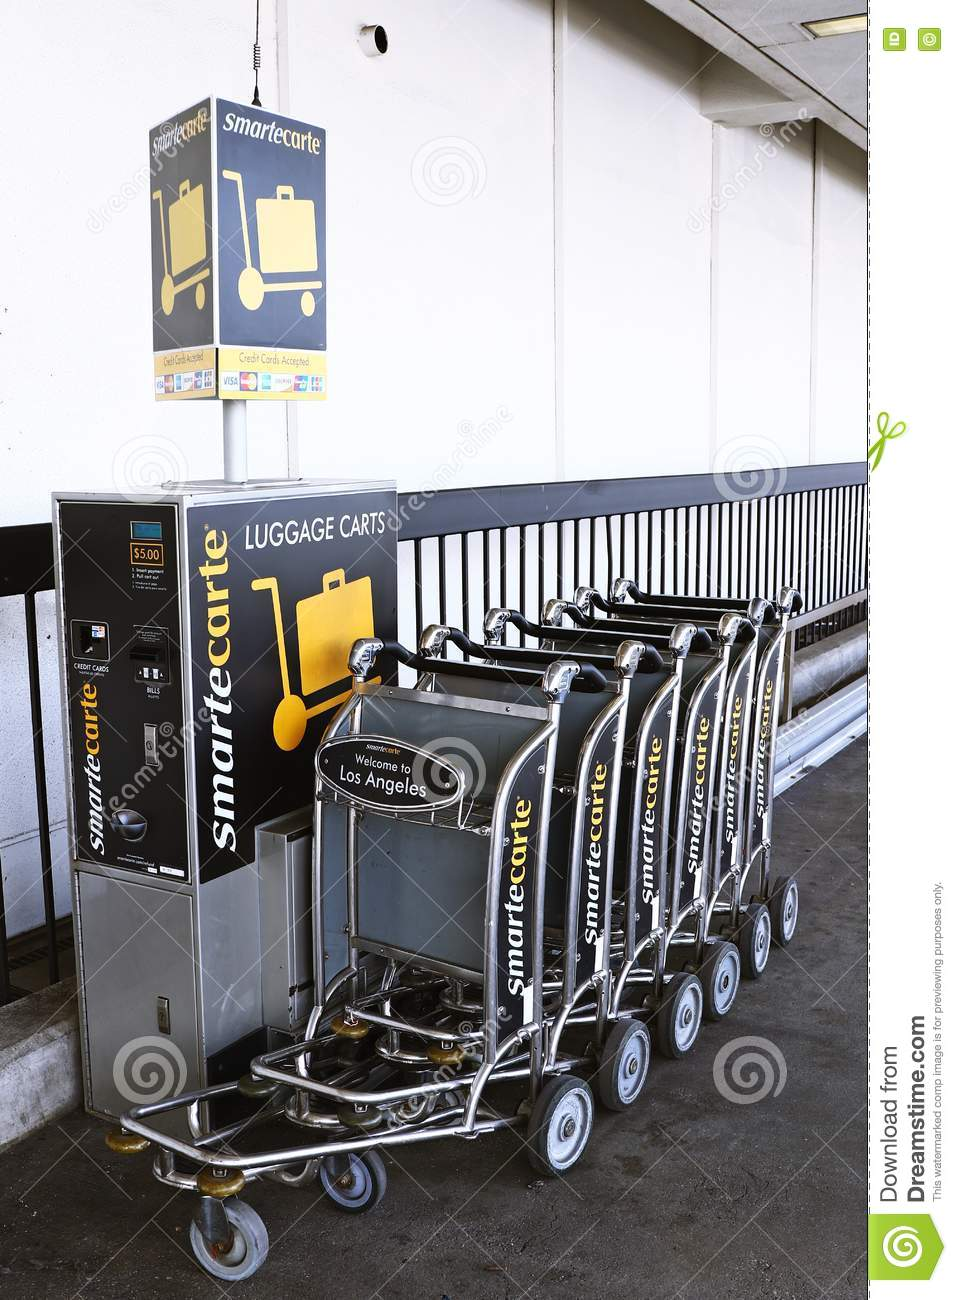 smartecarte-paying-luggage-carts-lax-ca-